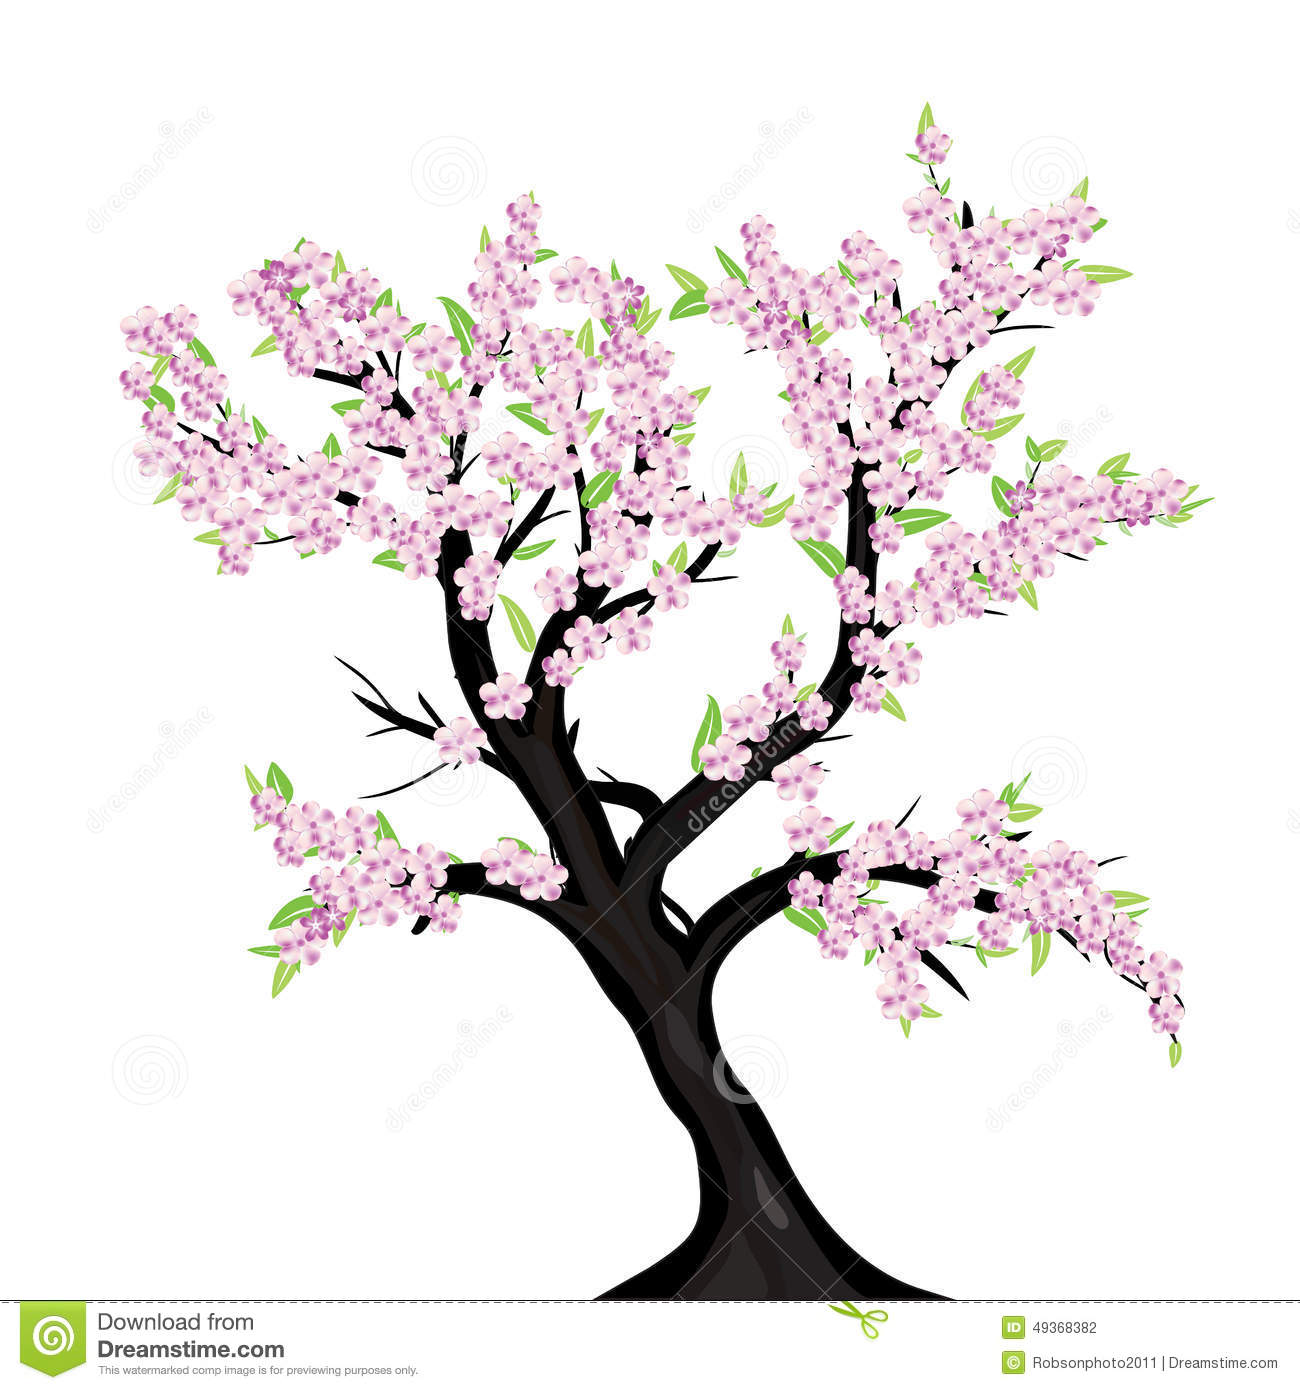 Lovely Cherry Blossom Tree Stock Illustration Illustration Of Green 49368382